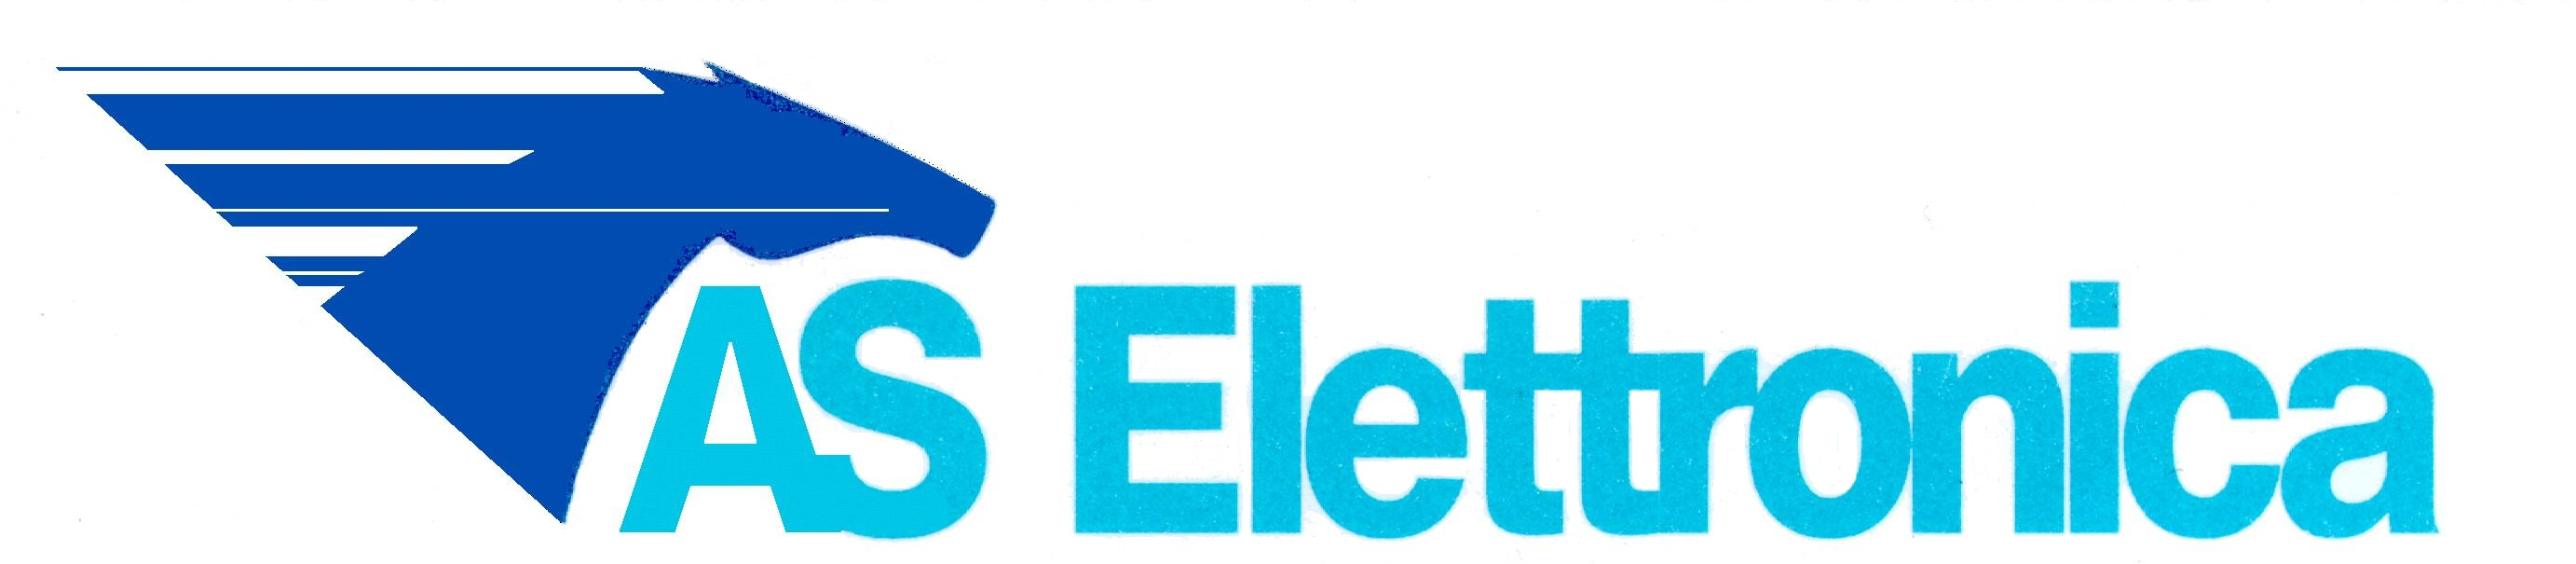 AS Elettronica